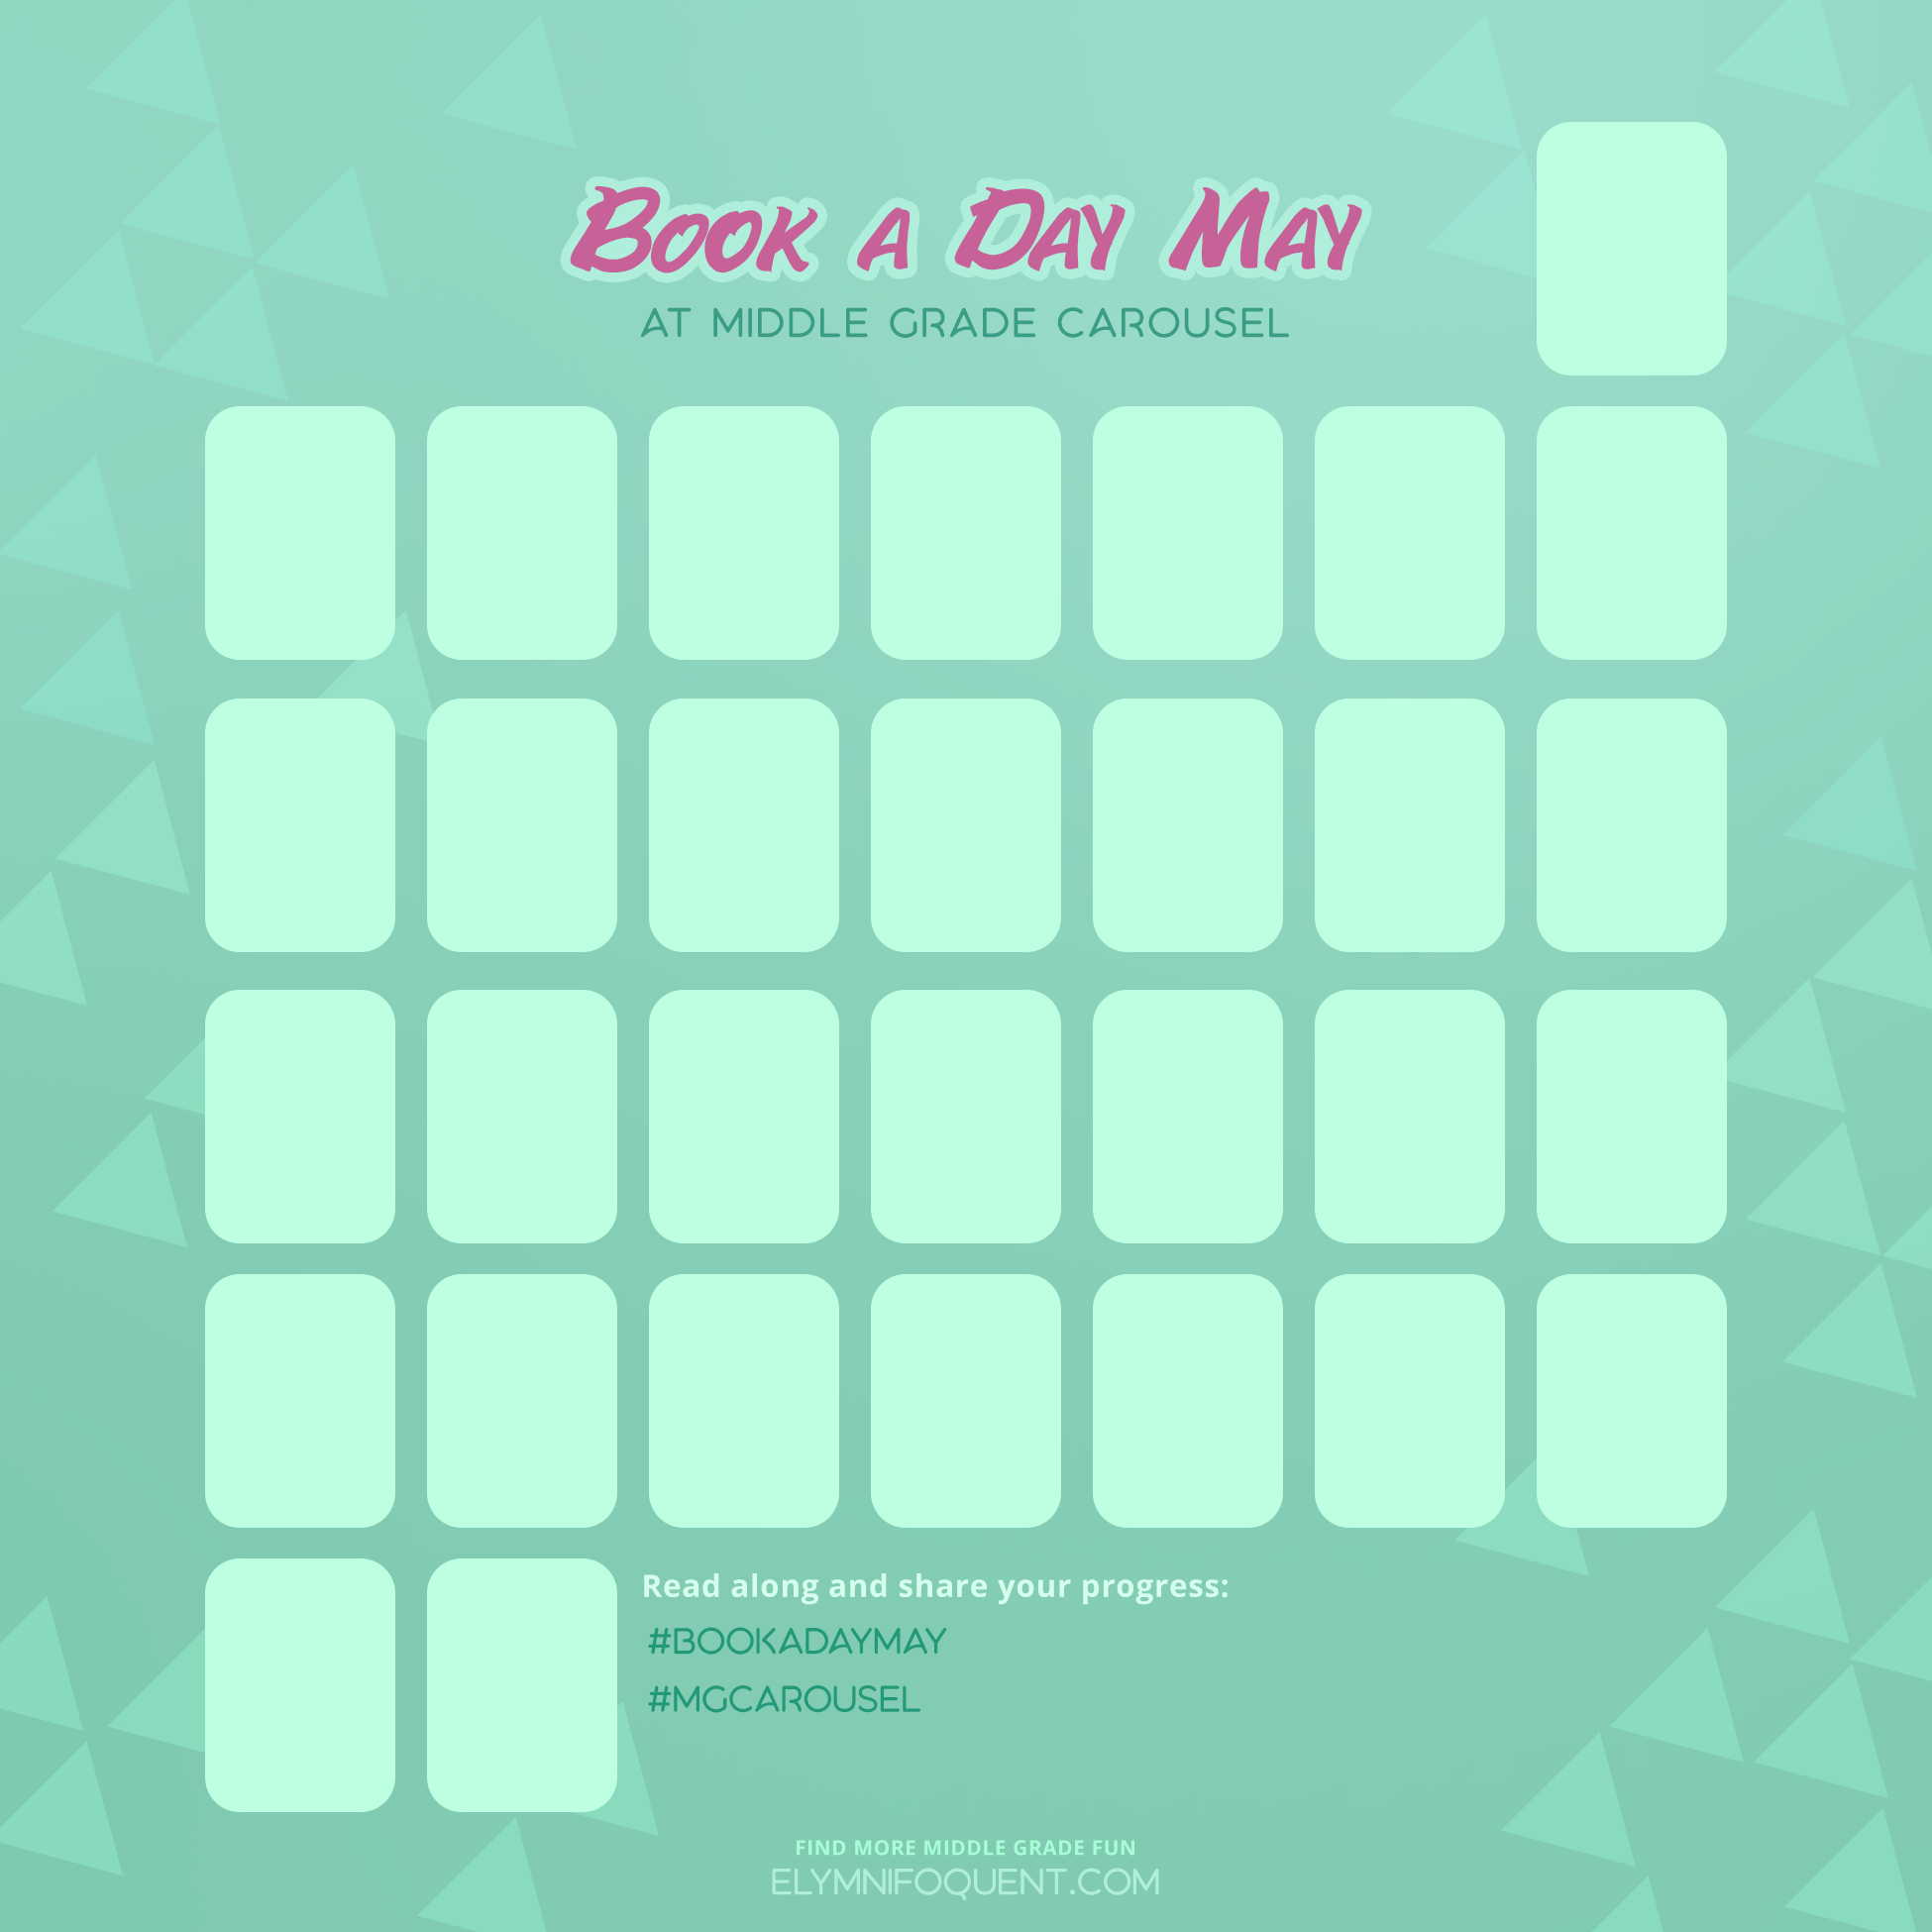 Calendar for Book A Day May 2021 at Middle Grade Carousel